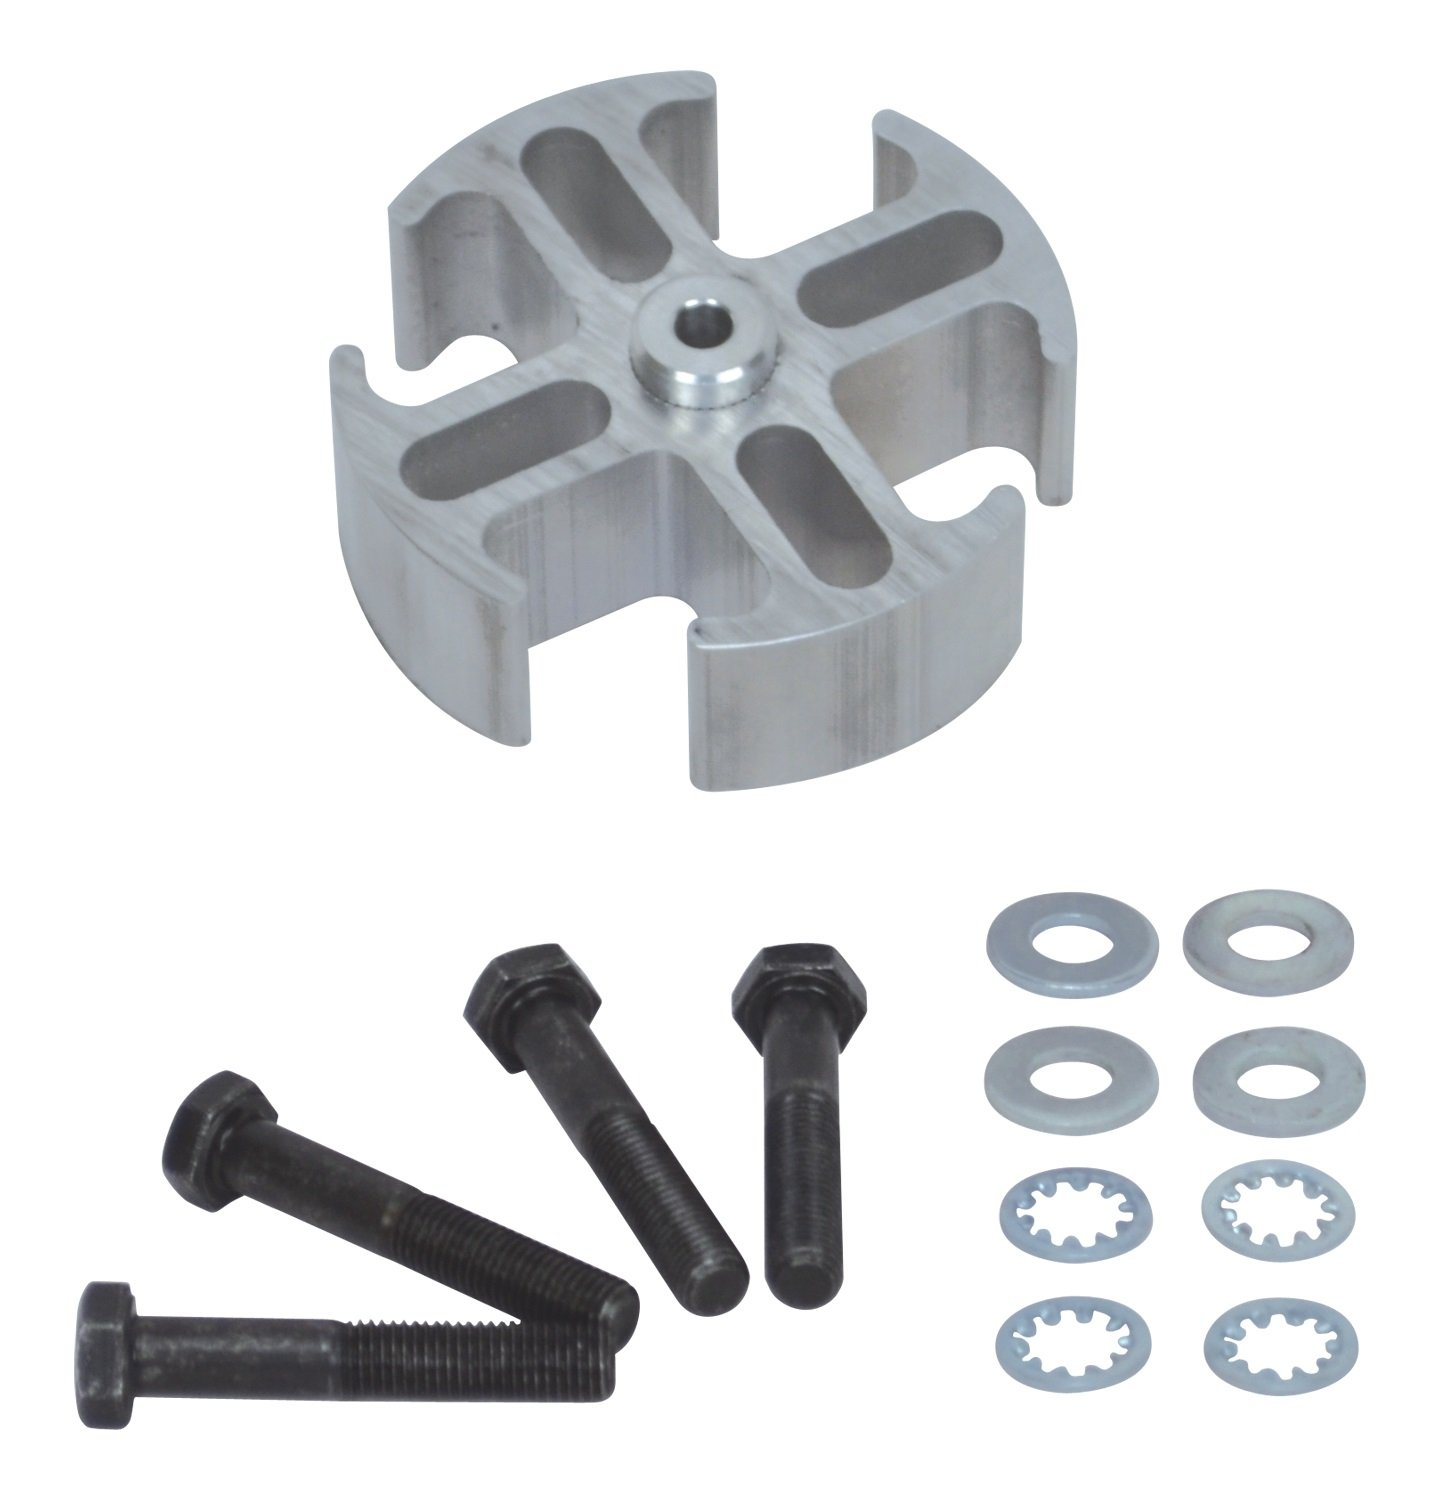 Flex-a-lite 14548 Mill Finish 1'' Fan Spacer Kit by Flex-a-lite